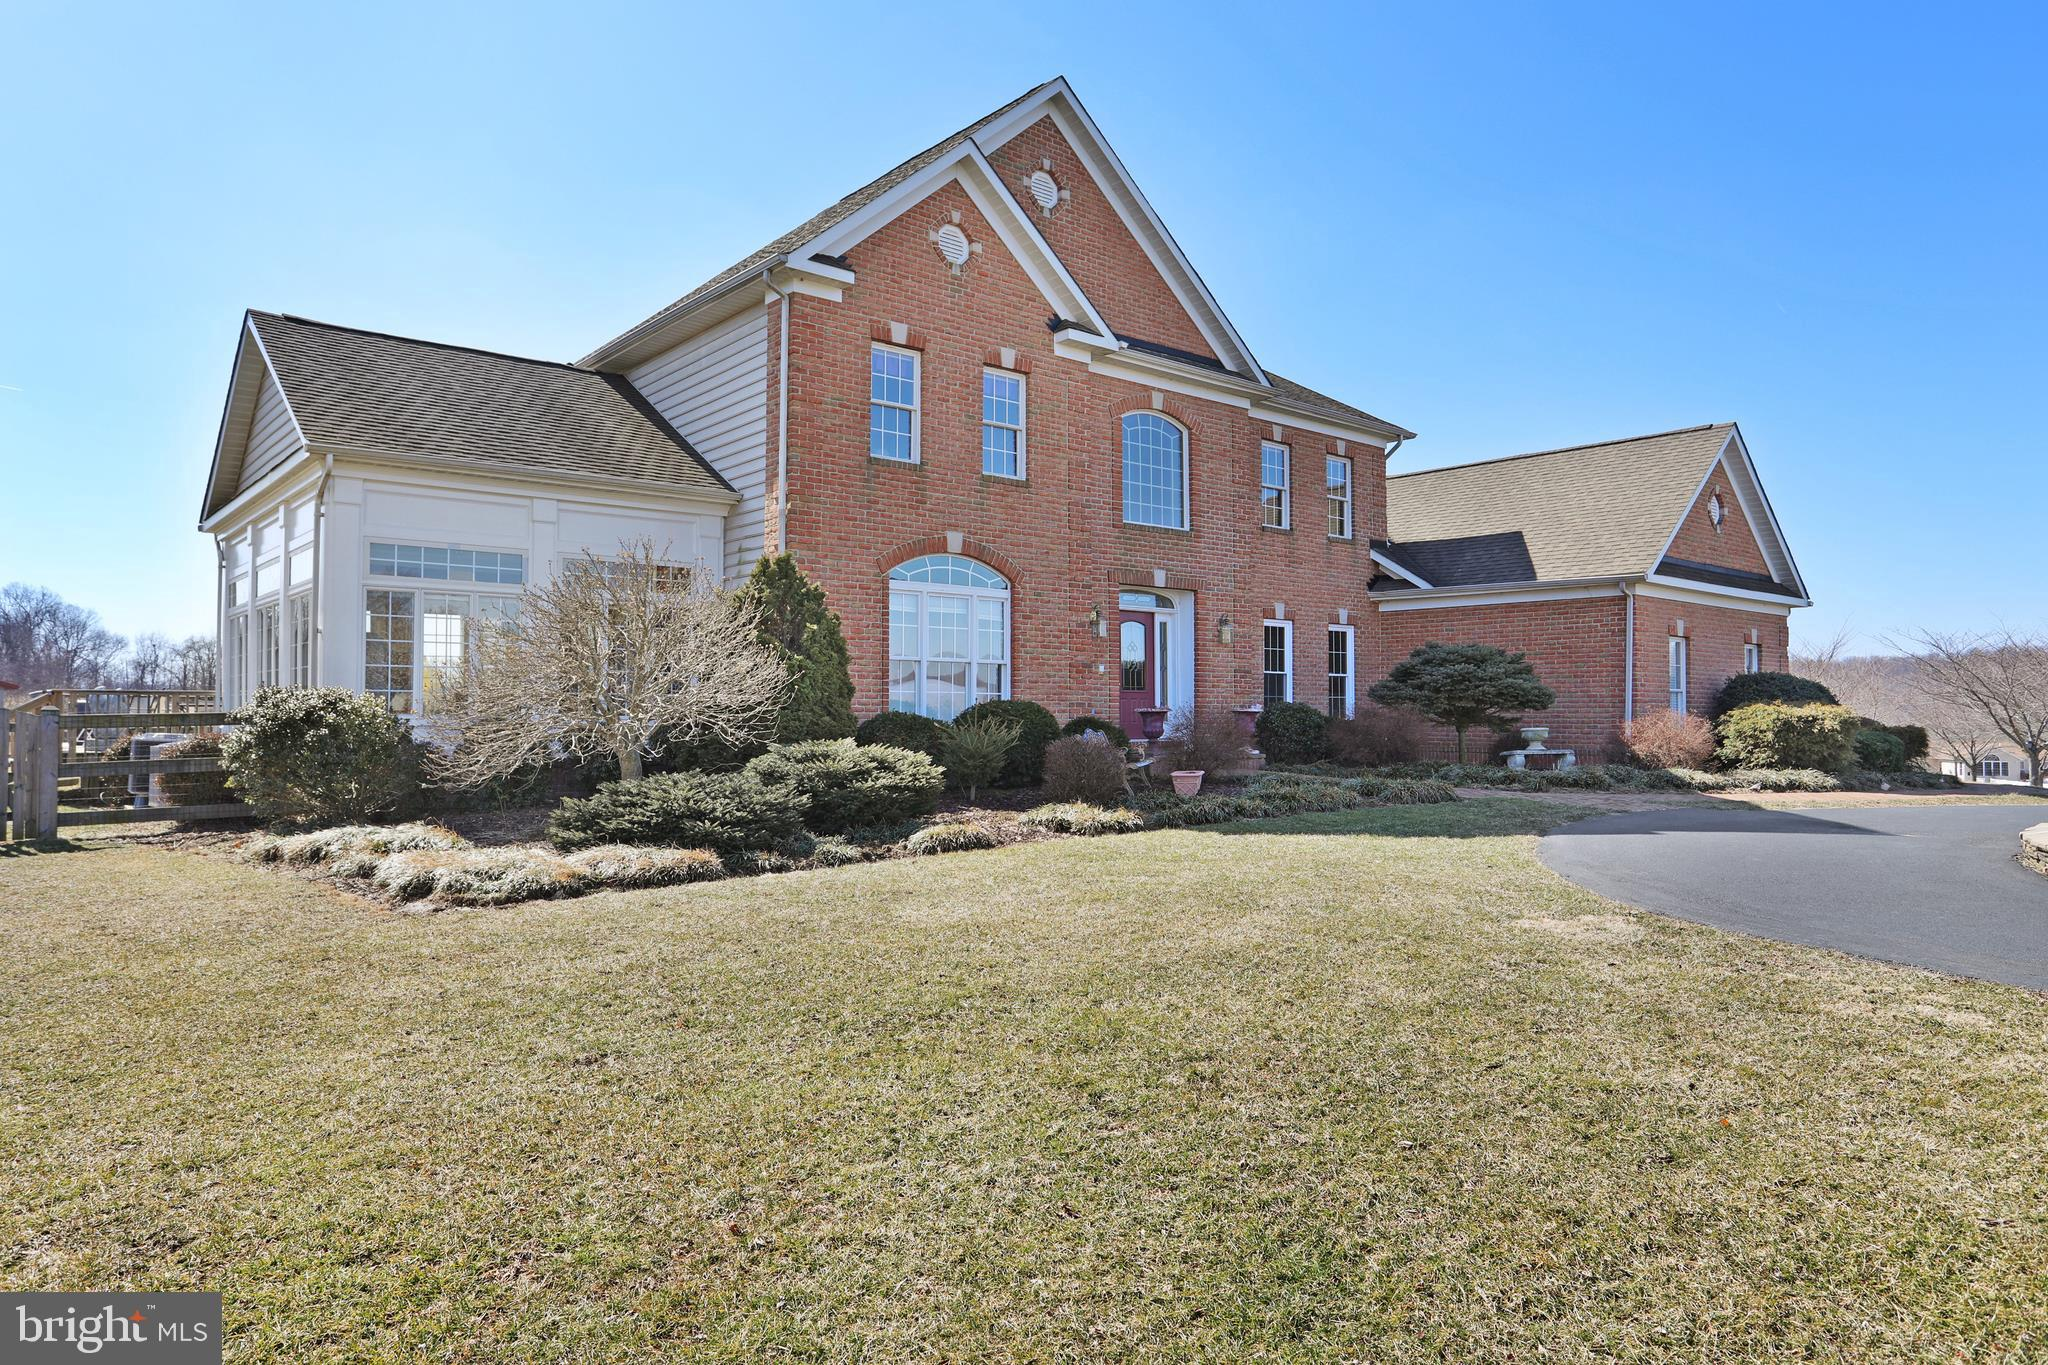 4013 TREGO ROAD, KEEDYSVILLE, MD 21756